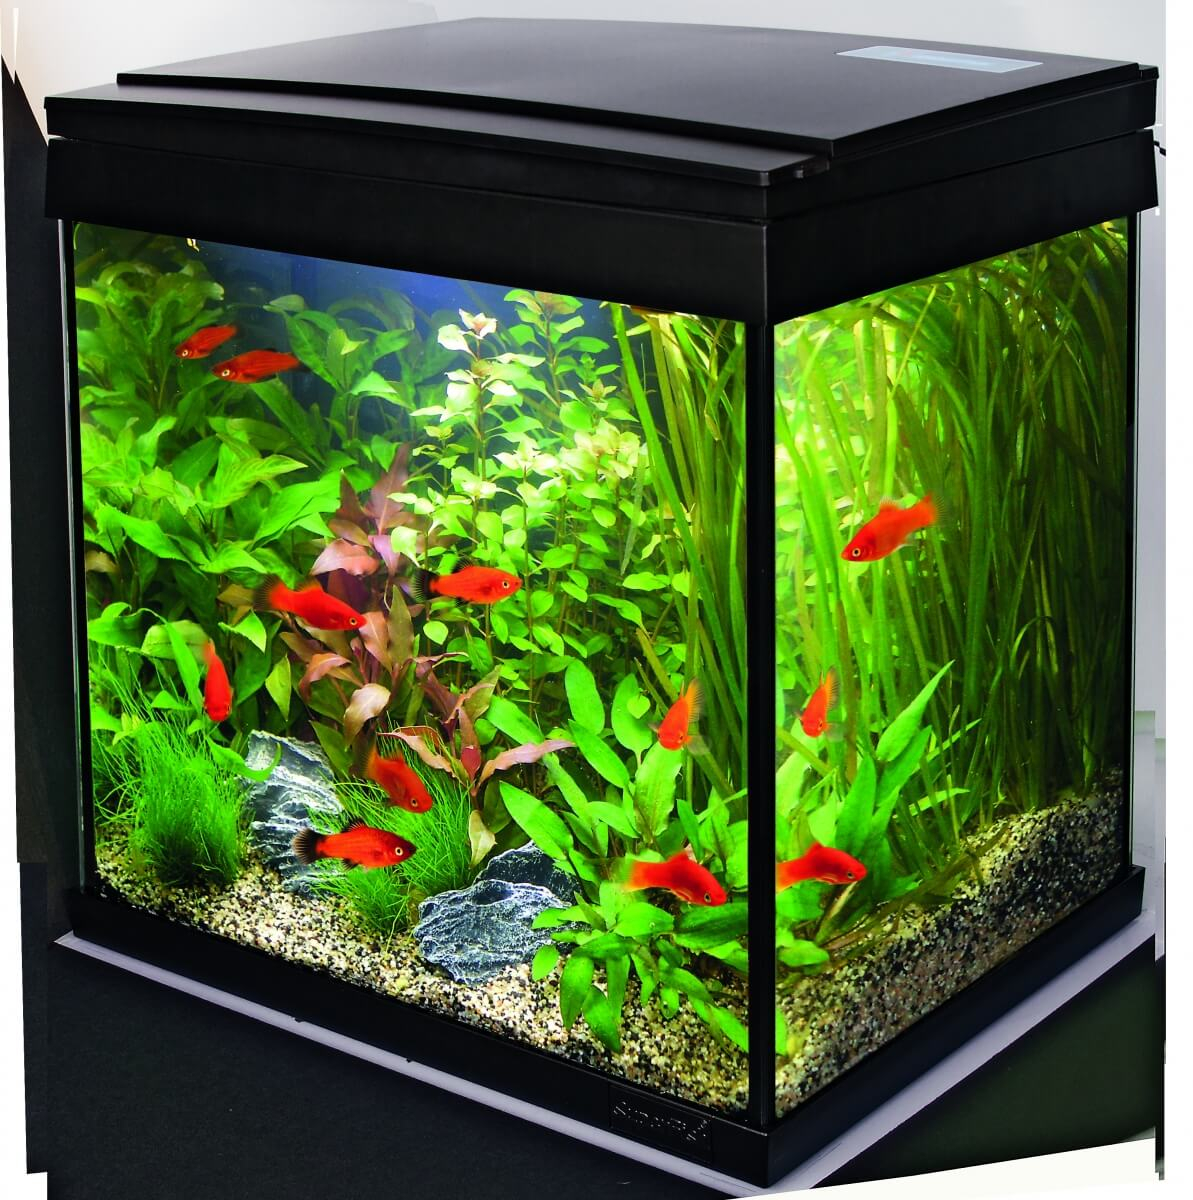 aquarium 40 litres combien de poissons. Black Bedroom Furniture Sets. Home Design Ideas